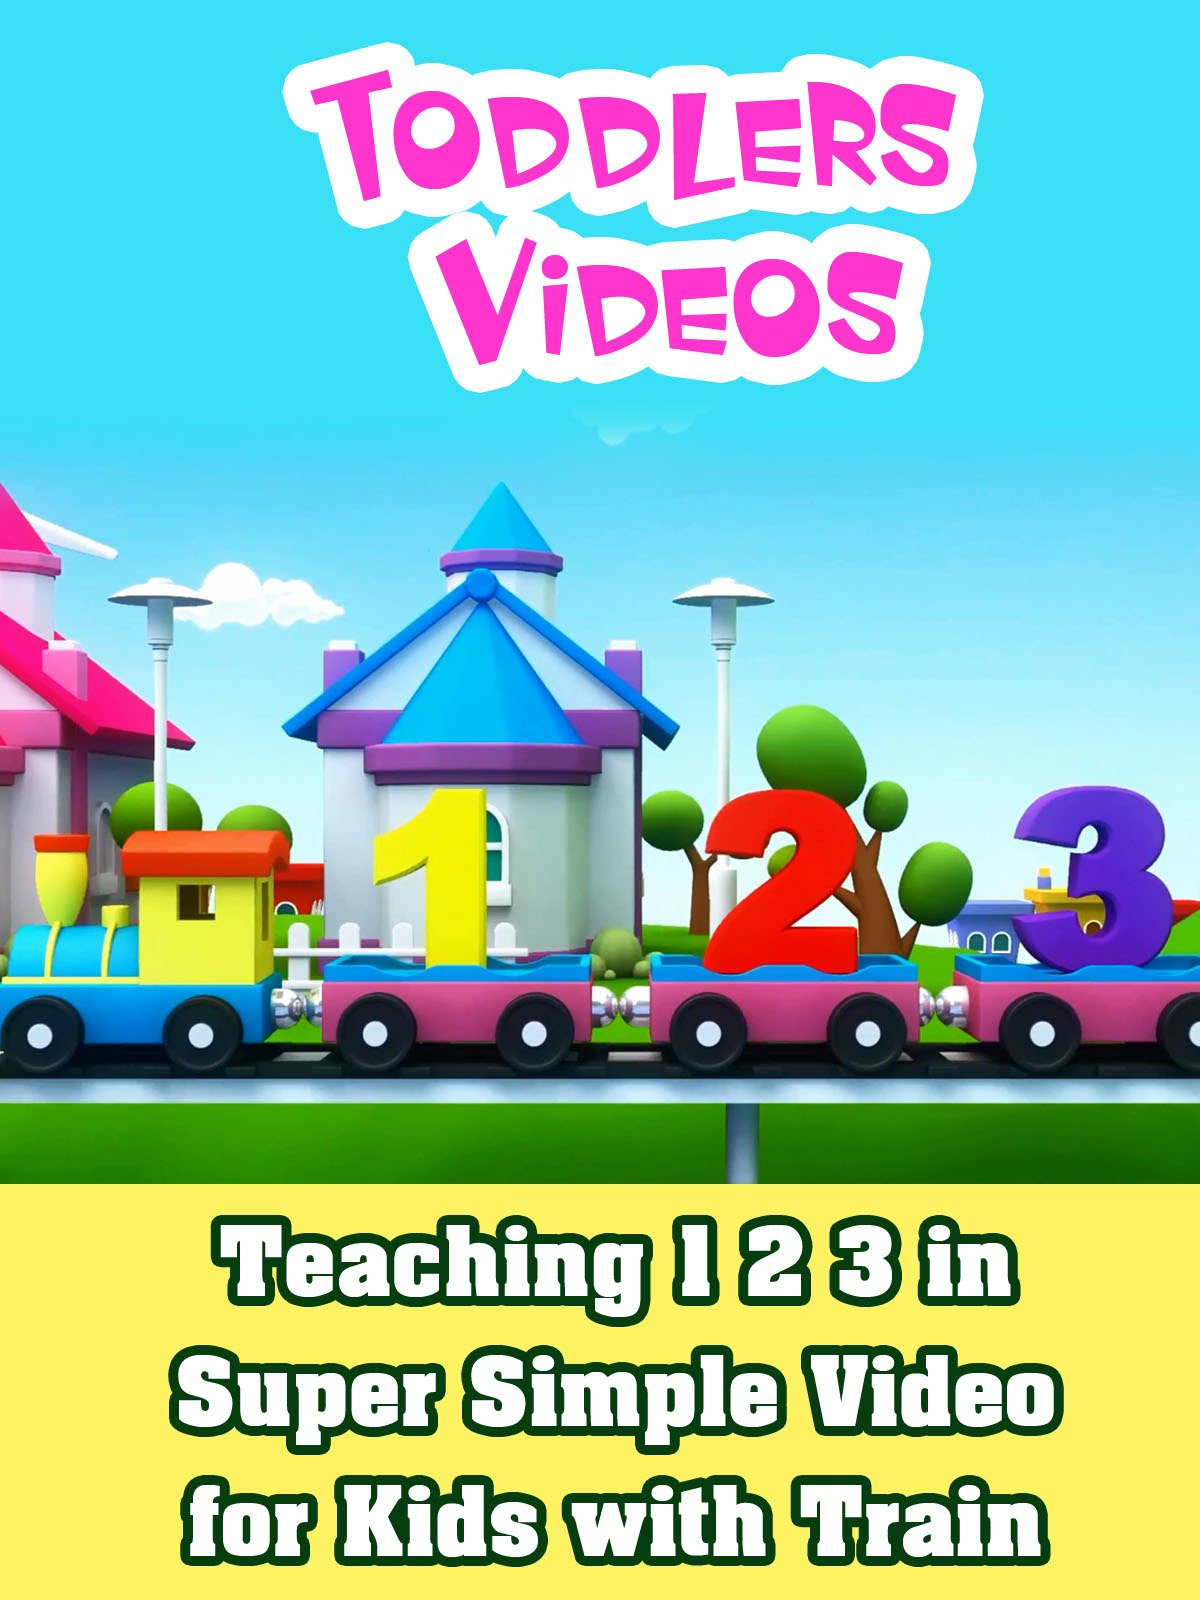 Teaching 1 2 3 in Super Simple Video for Kids with Train